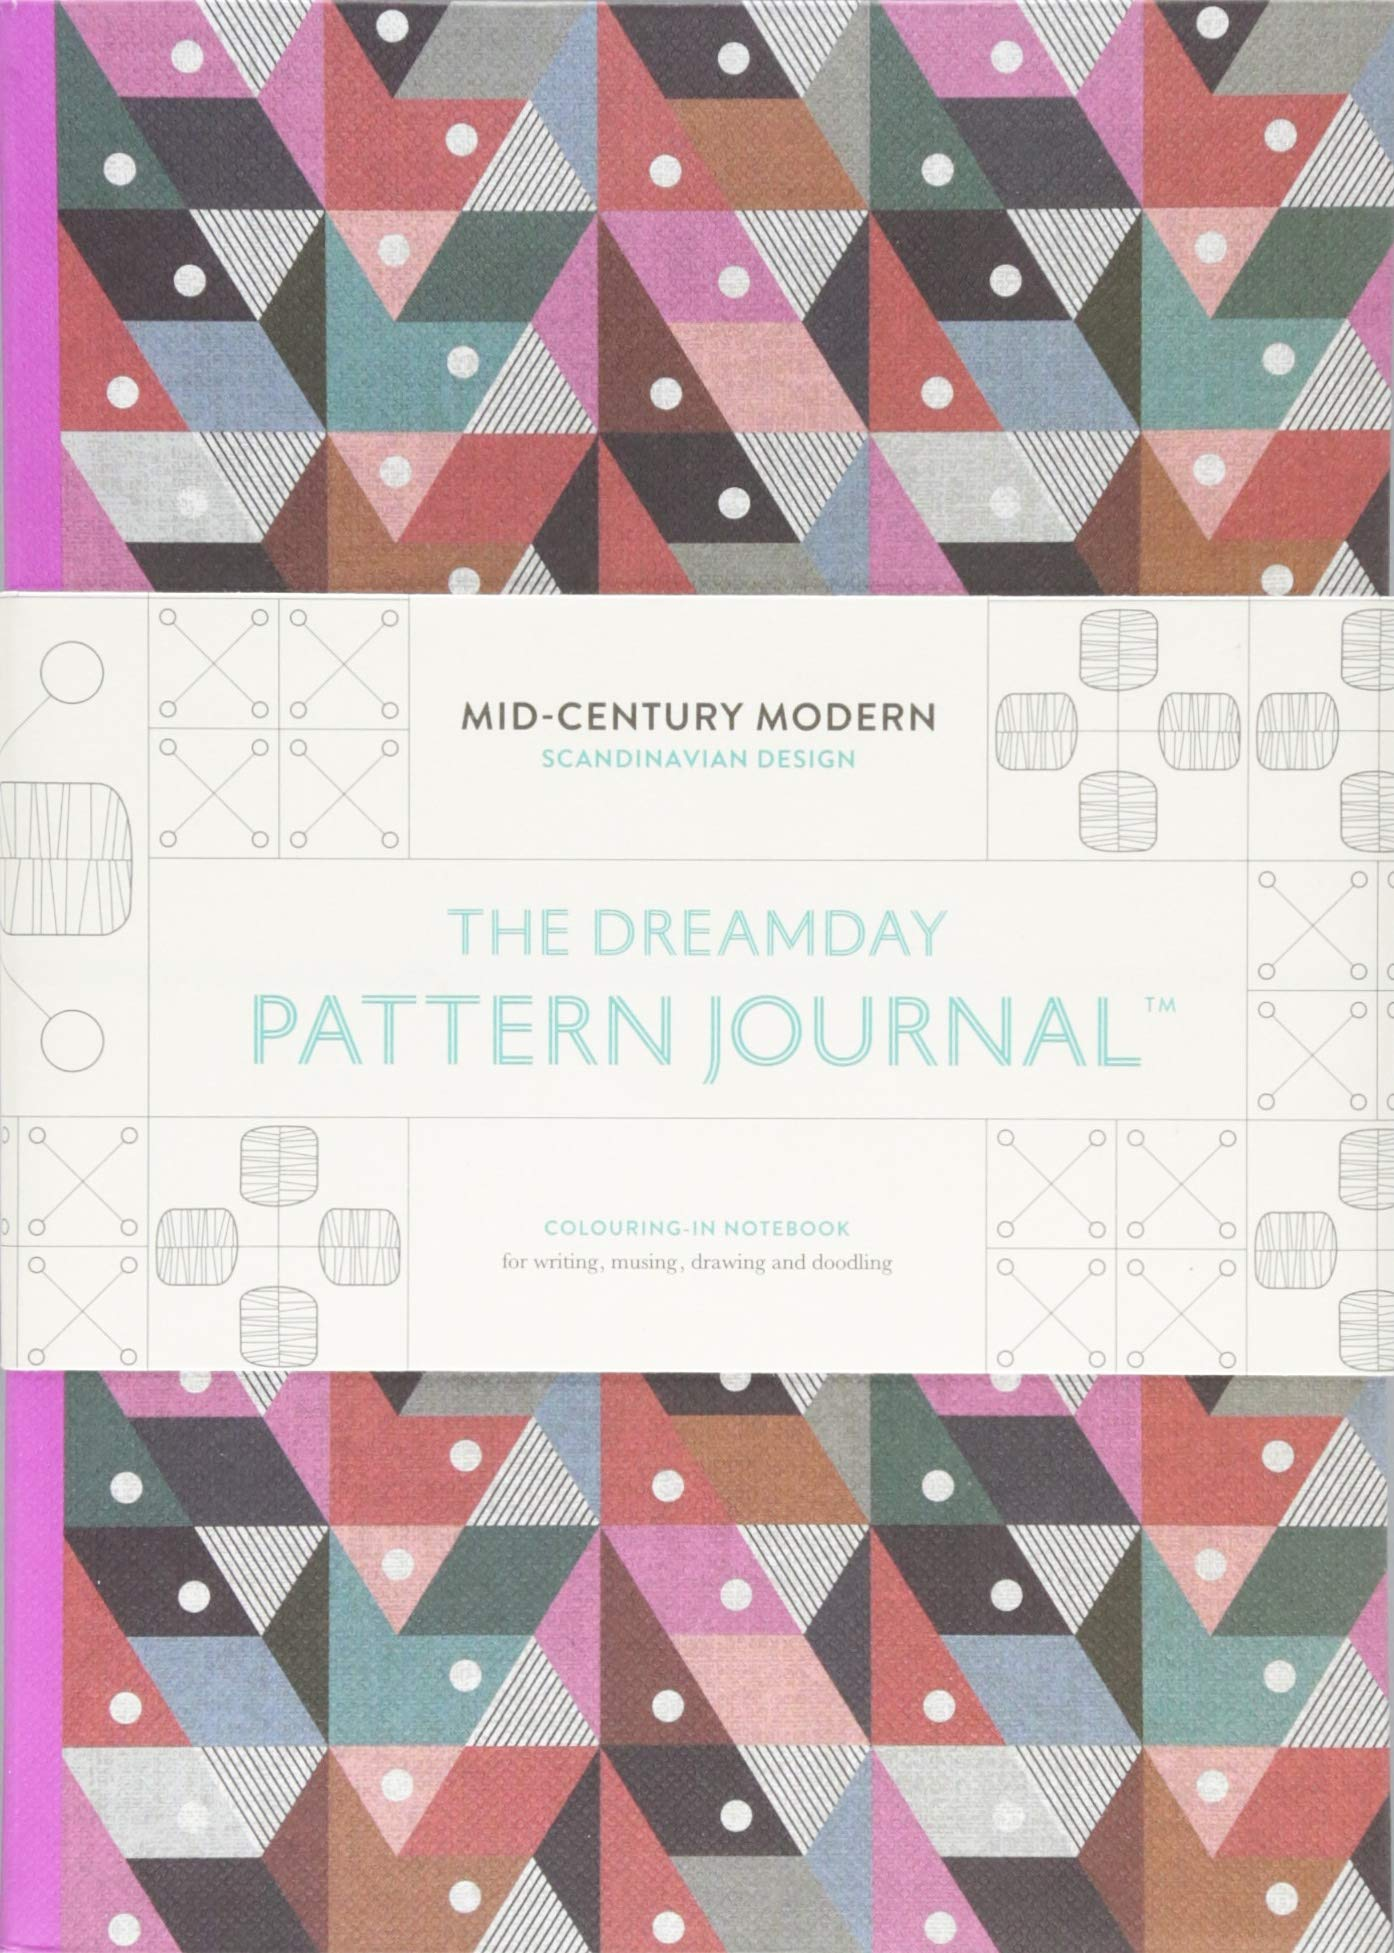 The Dreamday Pattern Journal: Mid-Century Modern - Scandinavian Design: Colouring-in notebook for writing, musing, drawing and doodling (The Original Pattern Journal)